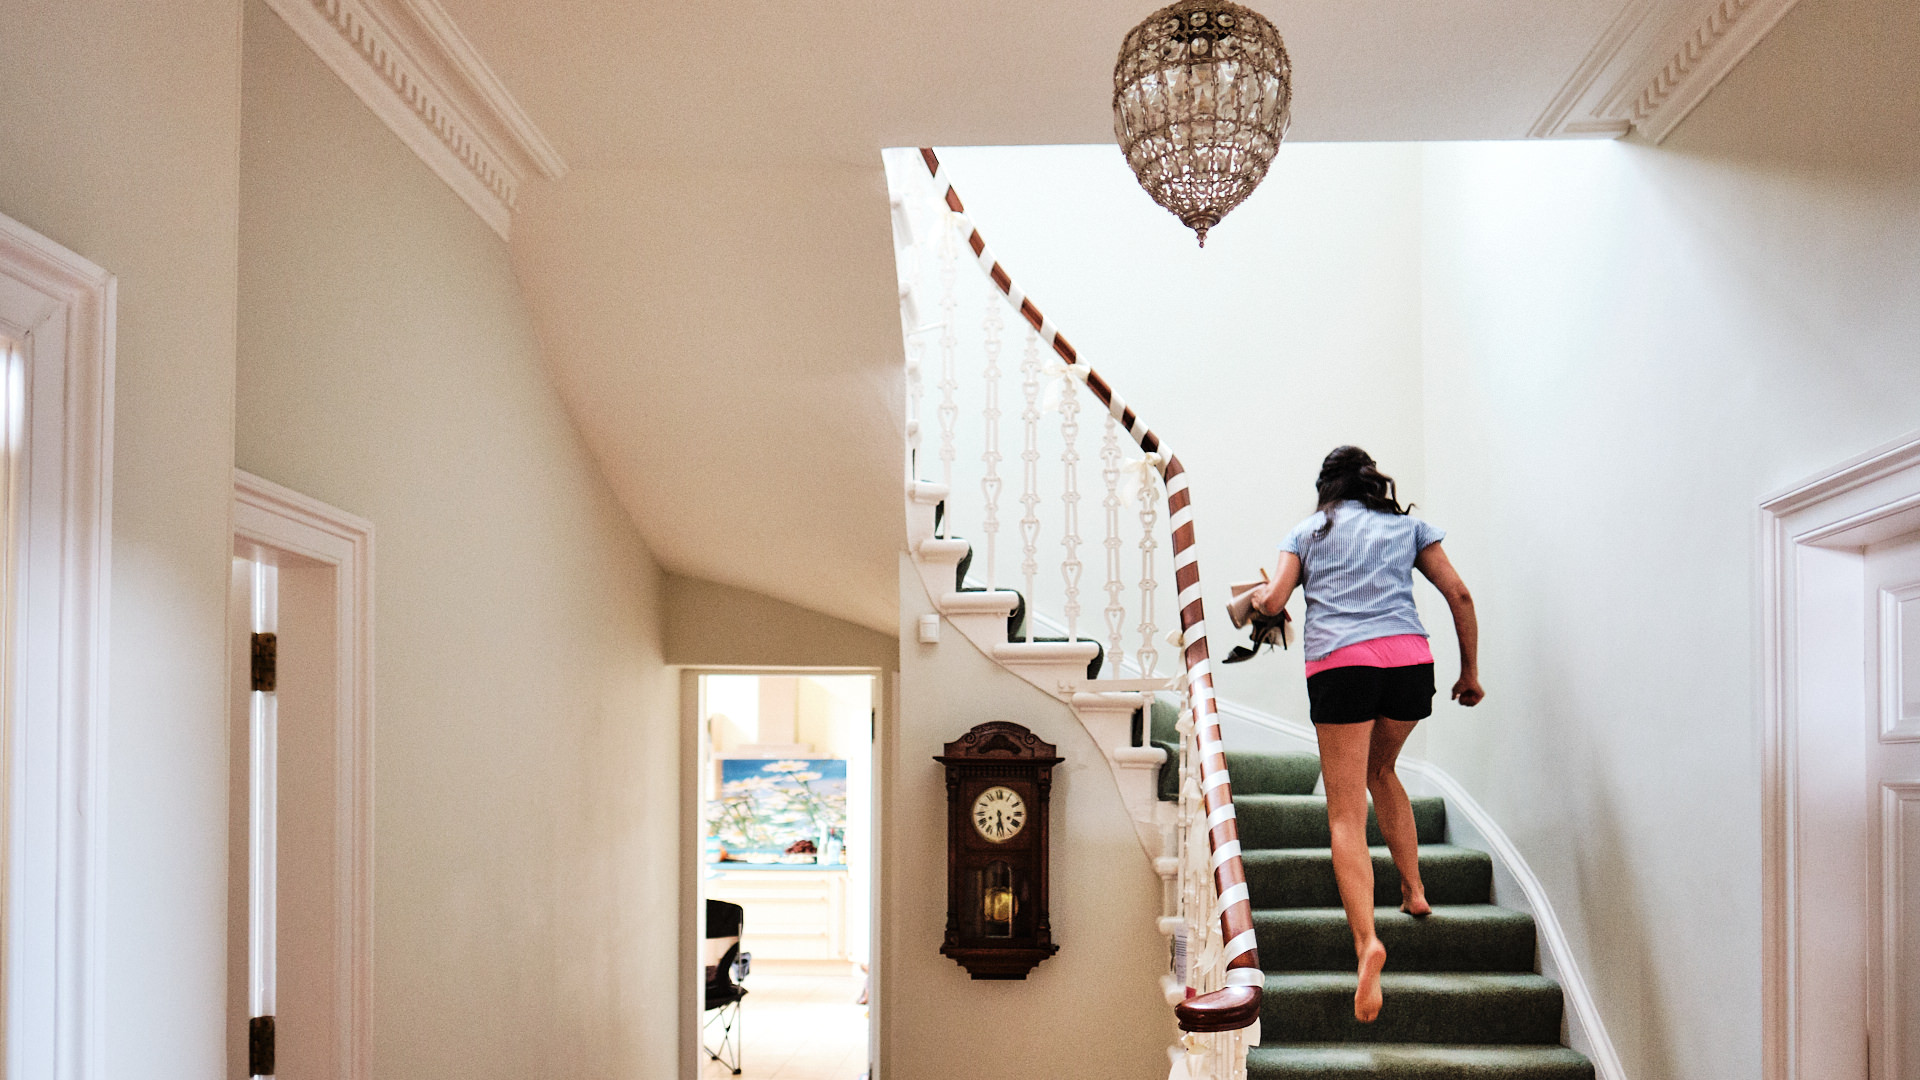 colour photograph of a woman wearing shorts running upstairs in a house